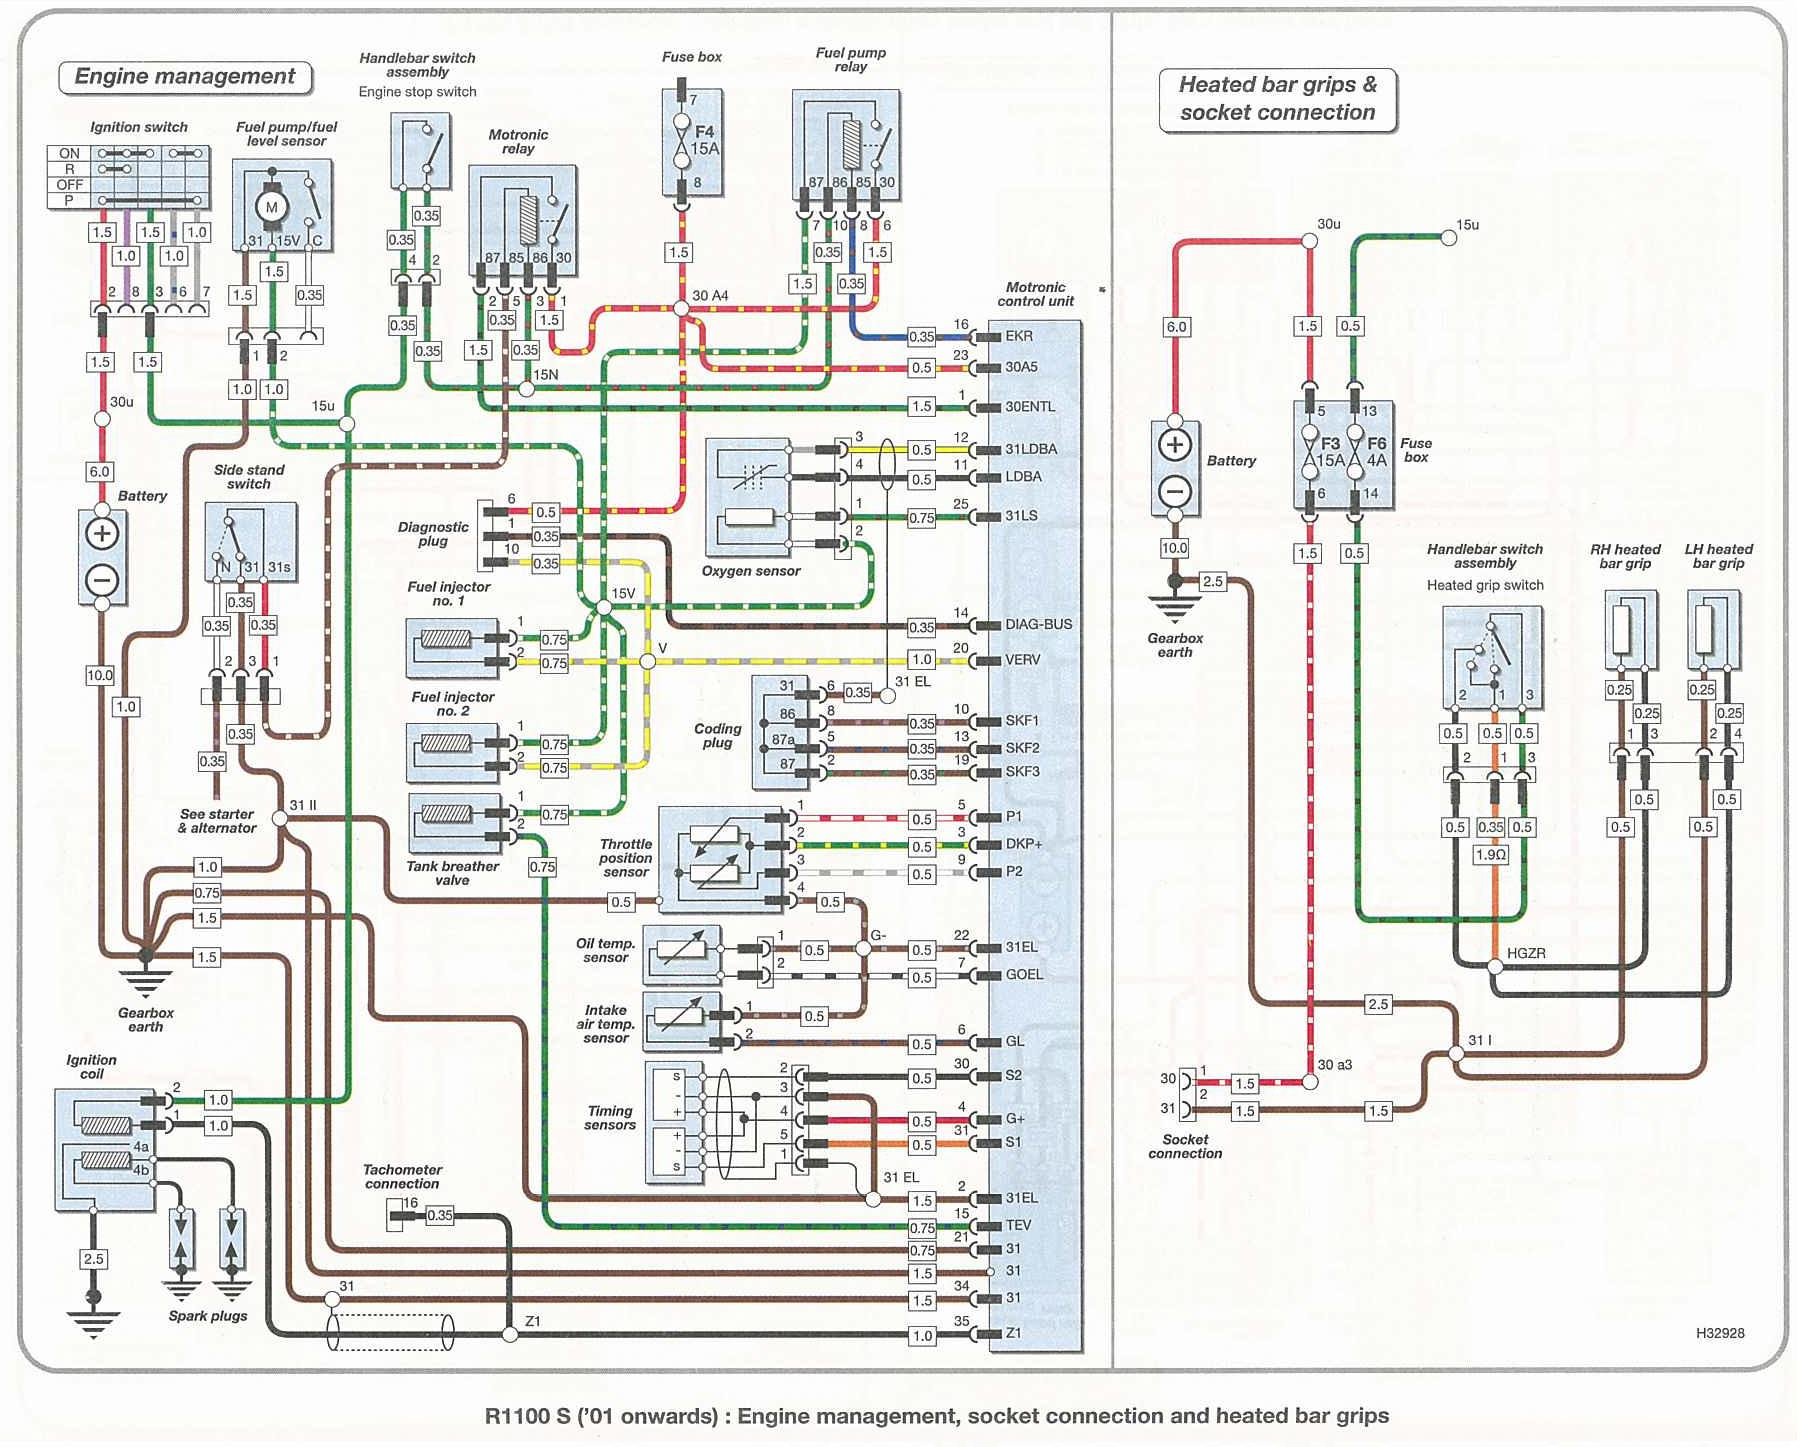 wiring07 bmw r1100s wiring diagrams bmw wire diagram at crackthecode.co